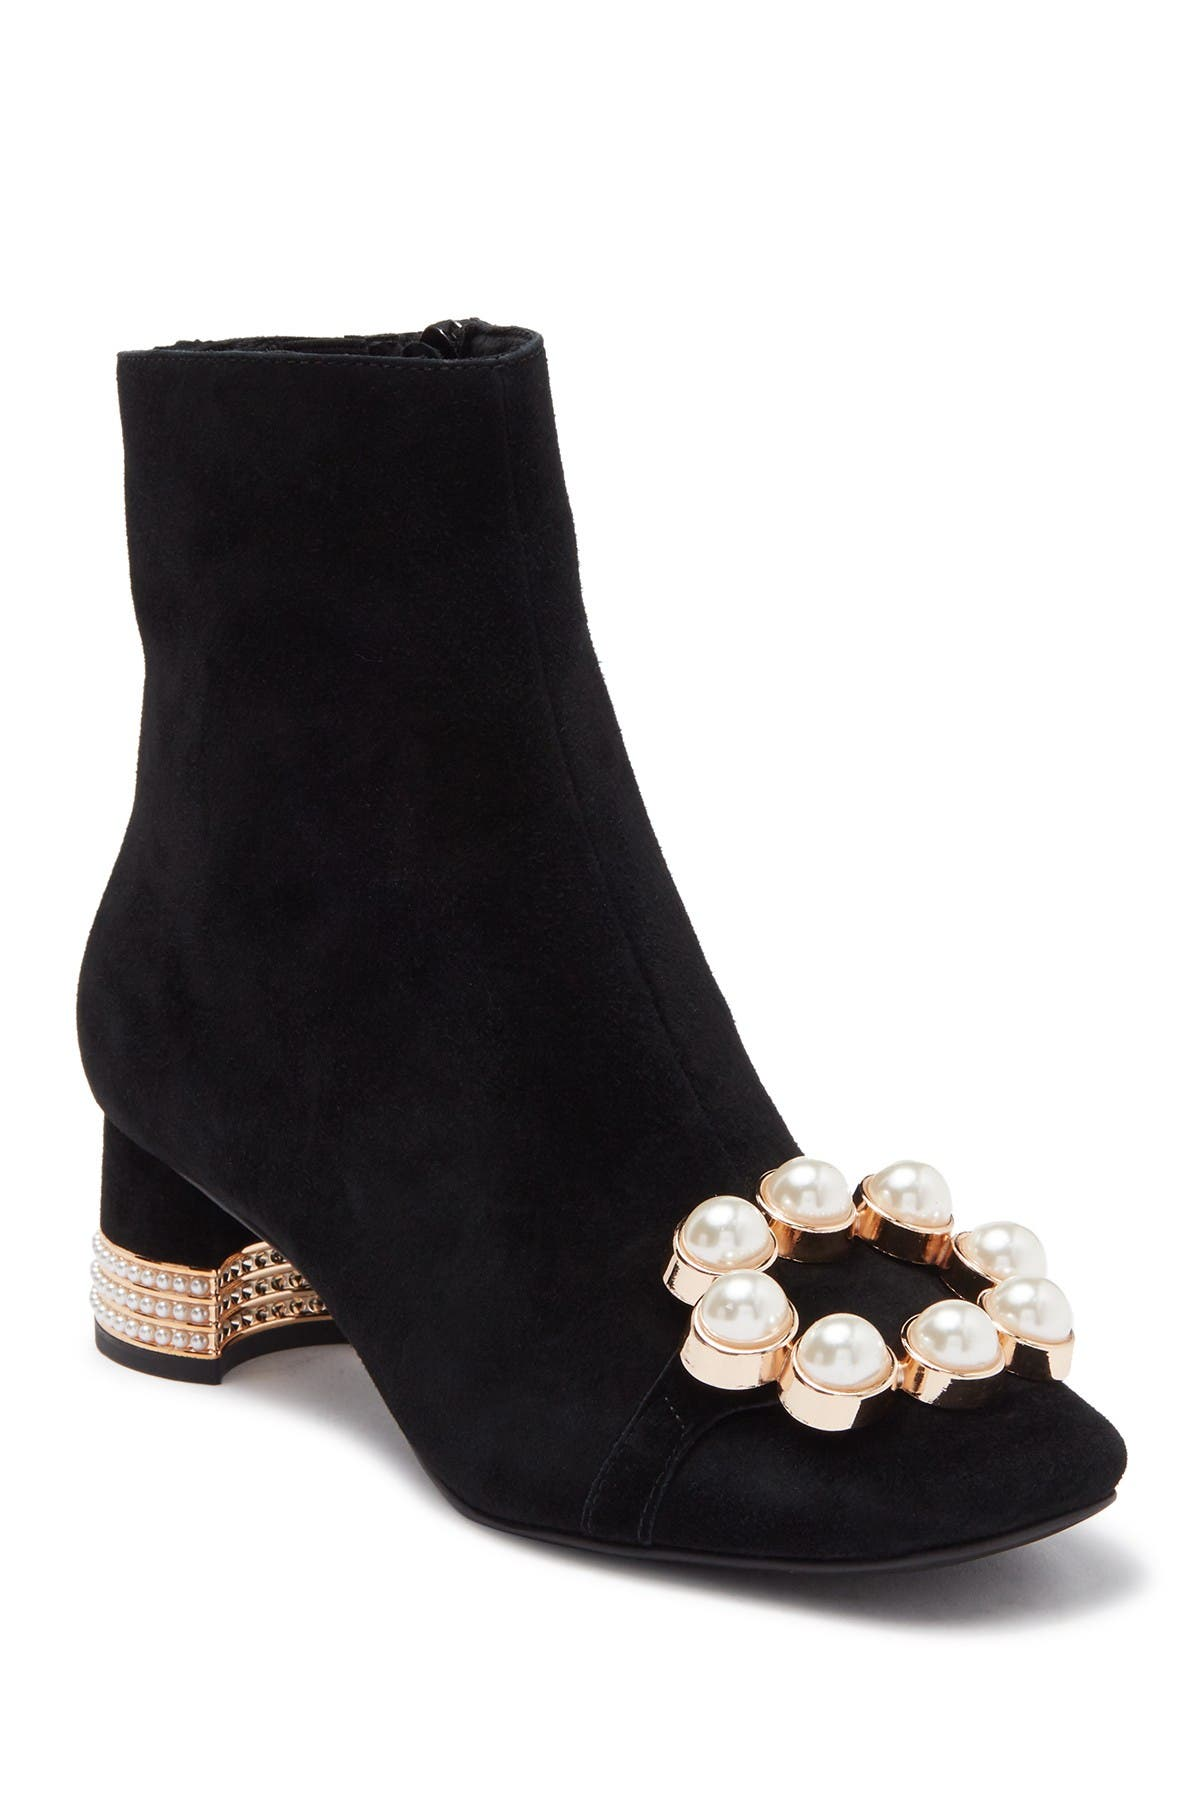 Image of Jeffrey Campbell Imitation Pearl Toe Embellished Bootie